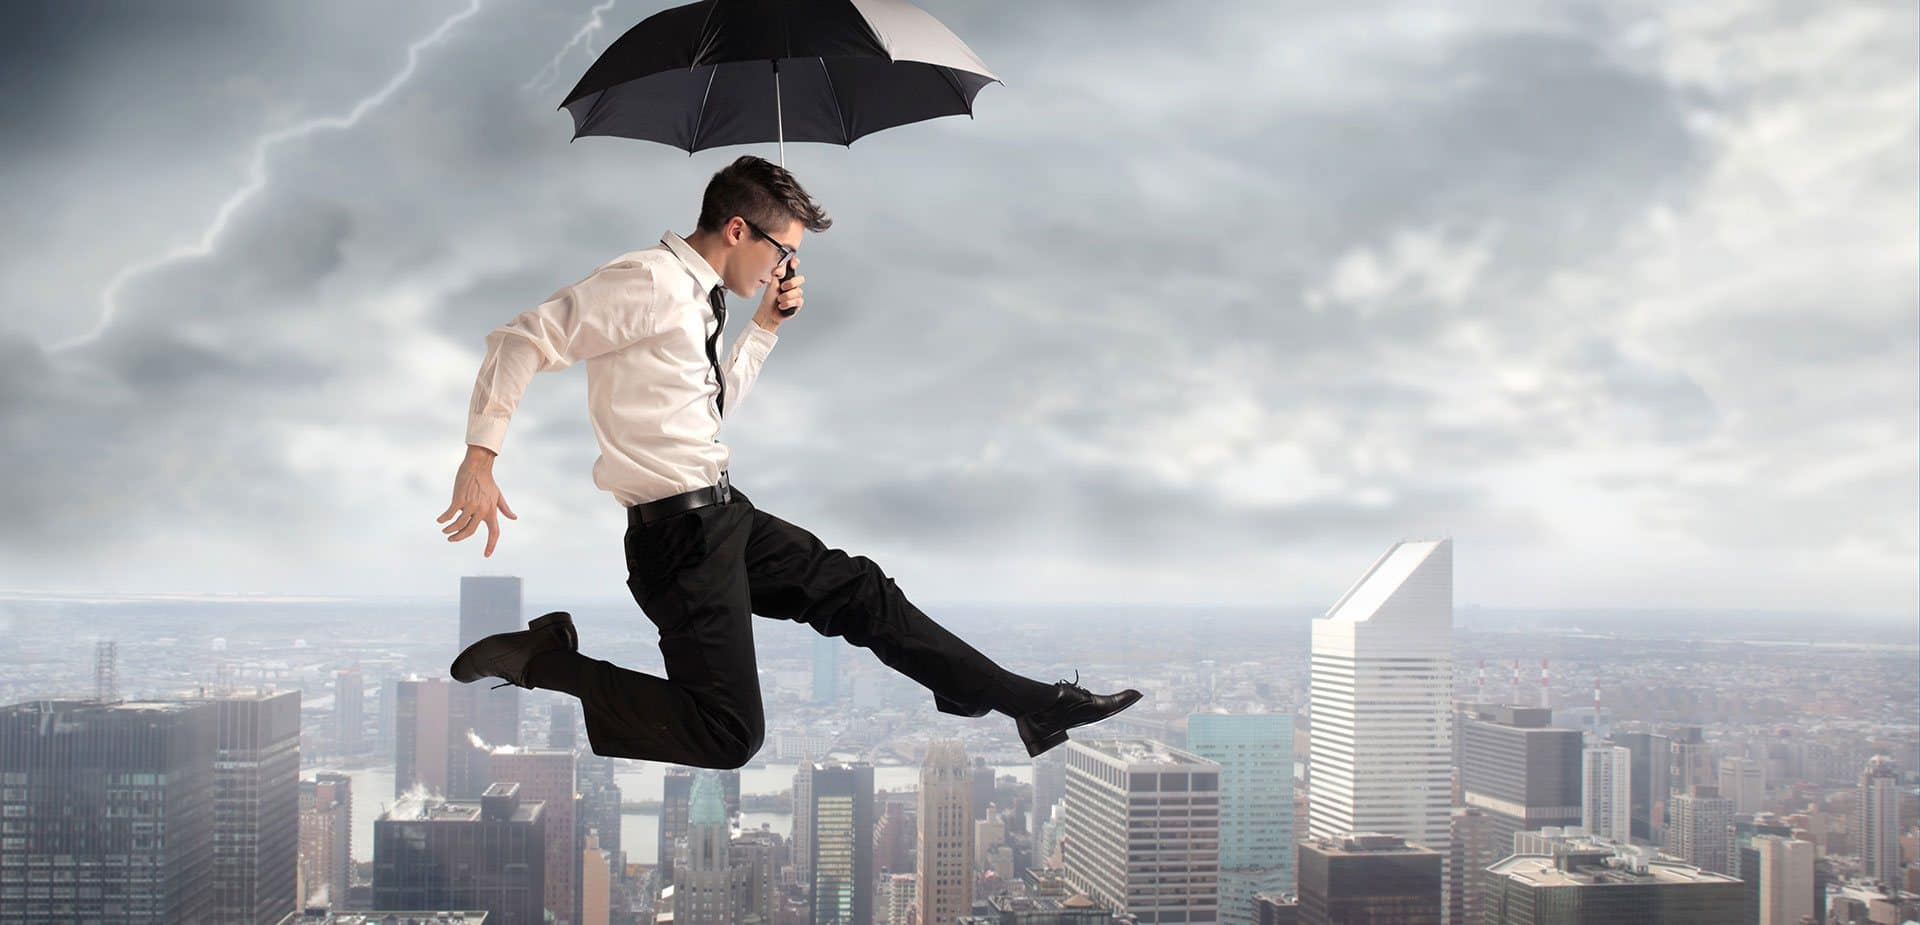 Get business insurance to protect my business